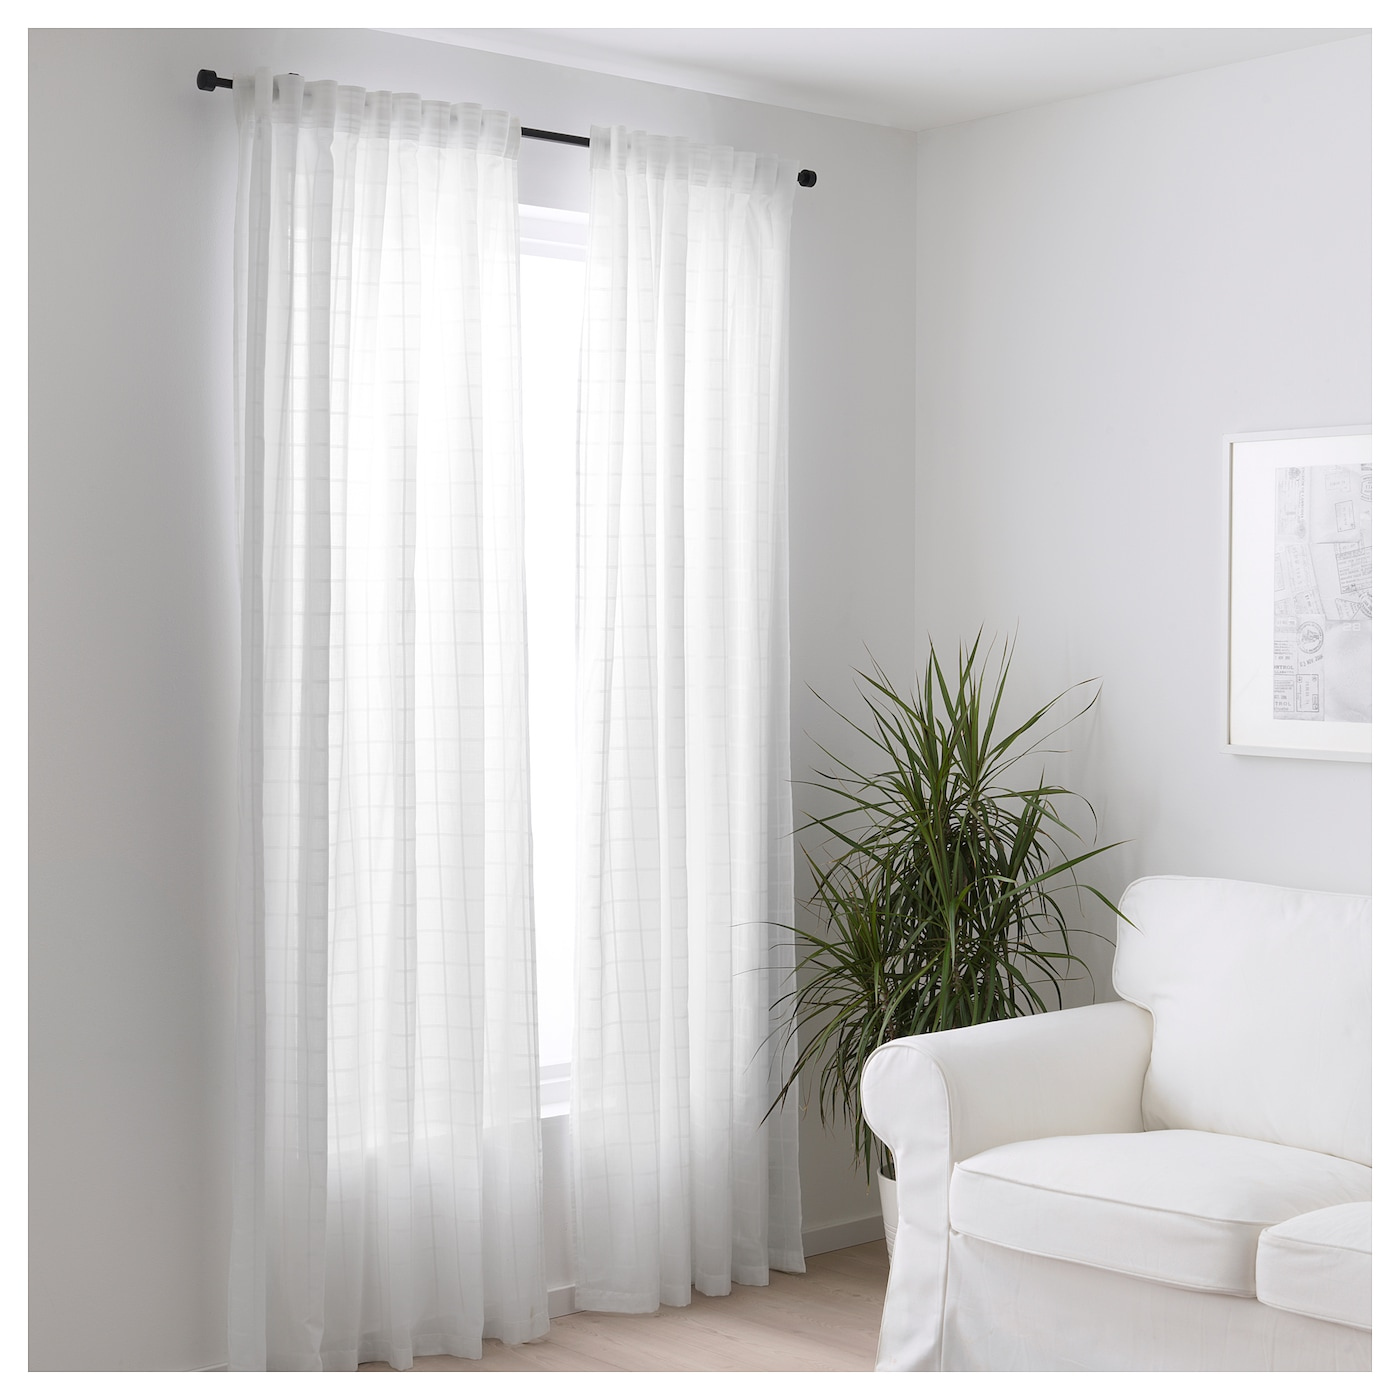 IKEA BERGITTE sheer curtains, 1 pair The curtains can be used on a curtain rod or a curtain track.